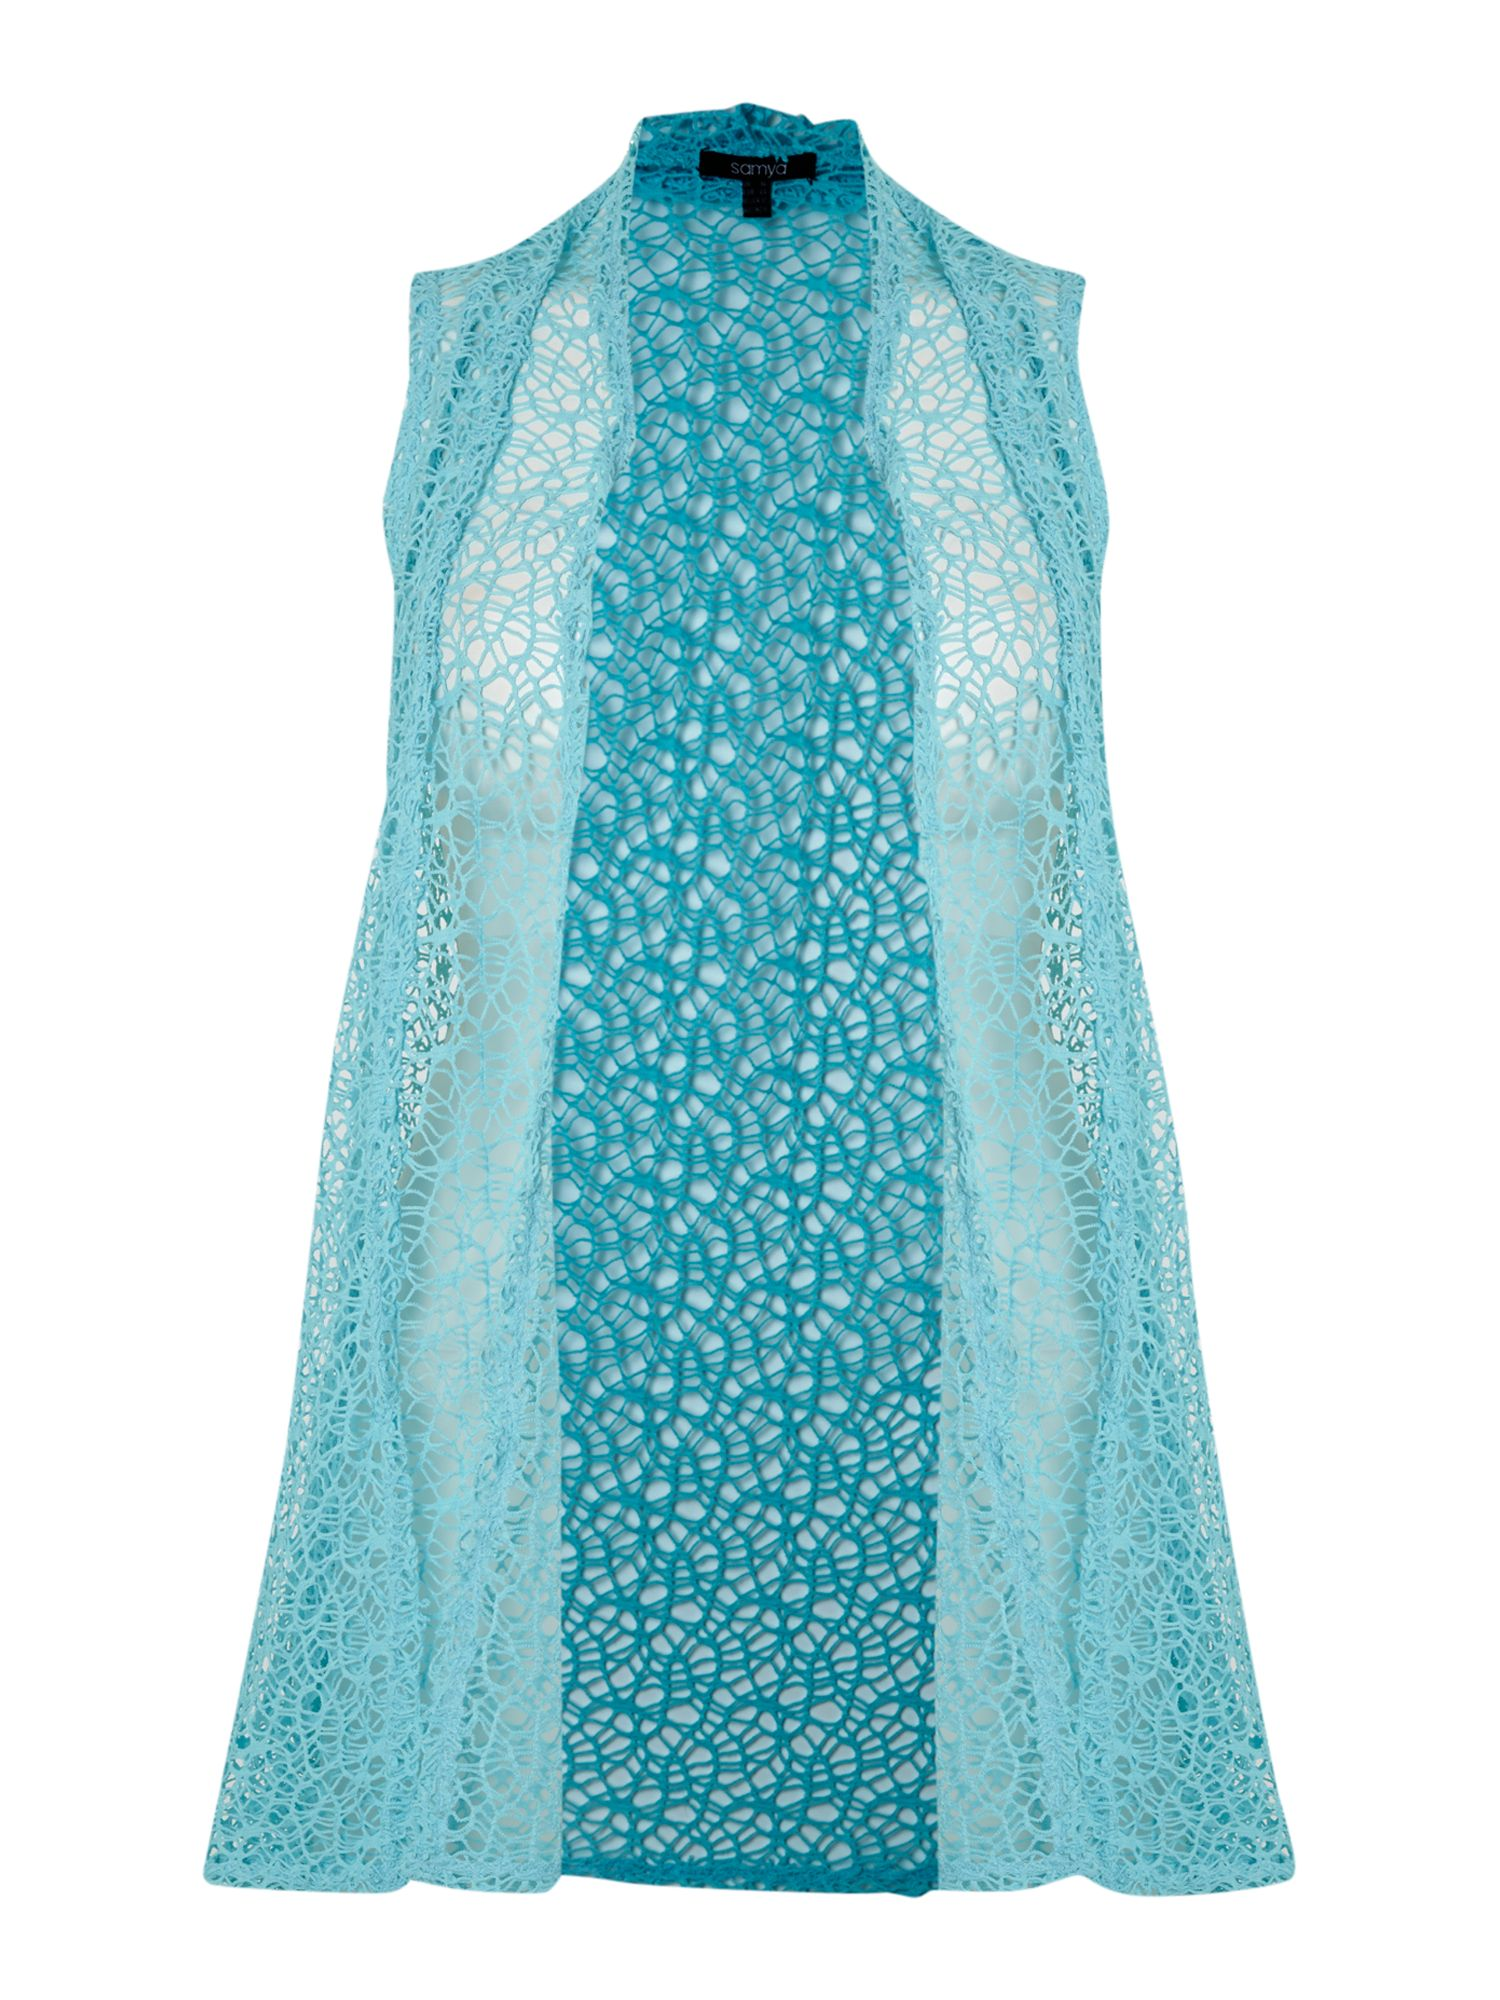 Samya Sheer Cardigan Style Cover Up in Blue | Lyst